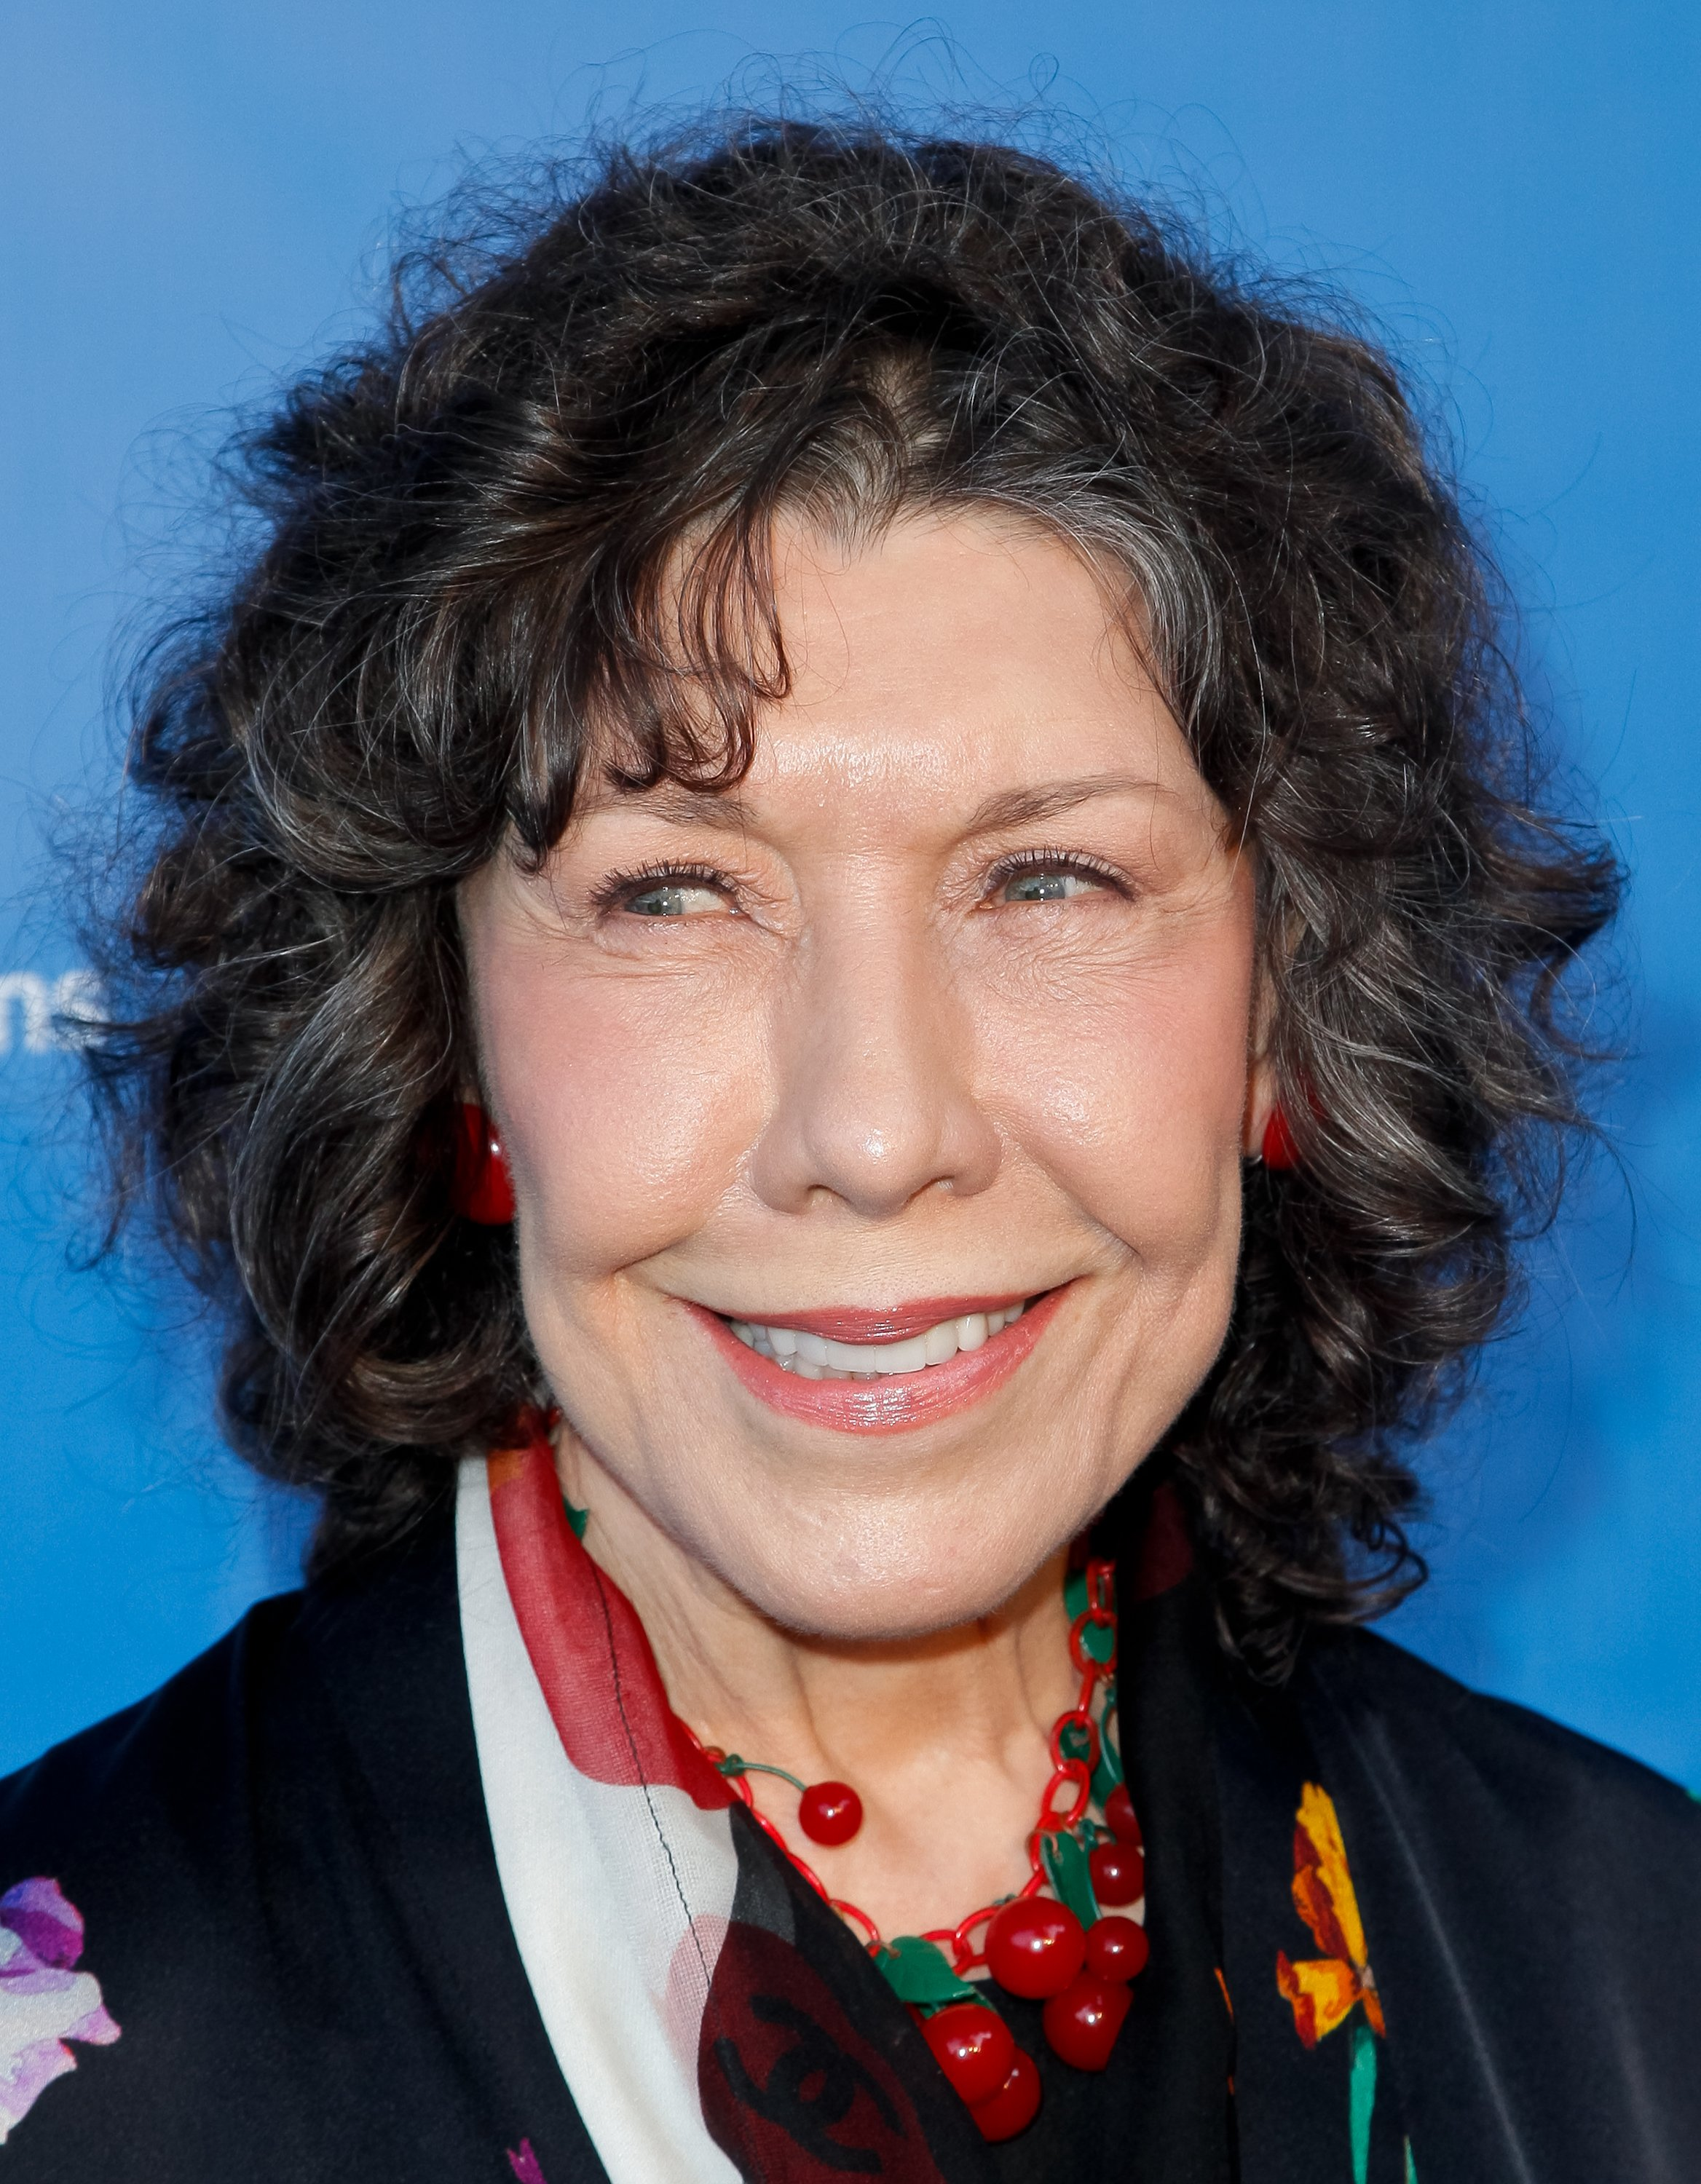 Lily Tomlin attends the 10th annual Oceana SeaChange Summer Party at Private Residence on July 15, 2017. | Source: Getty Images